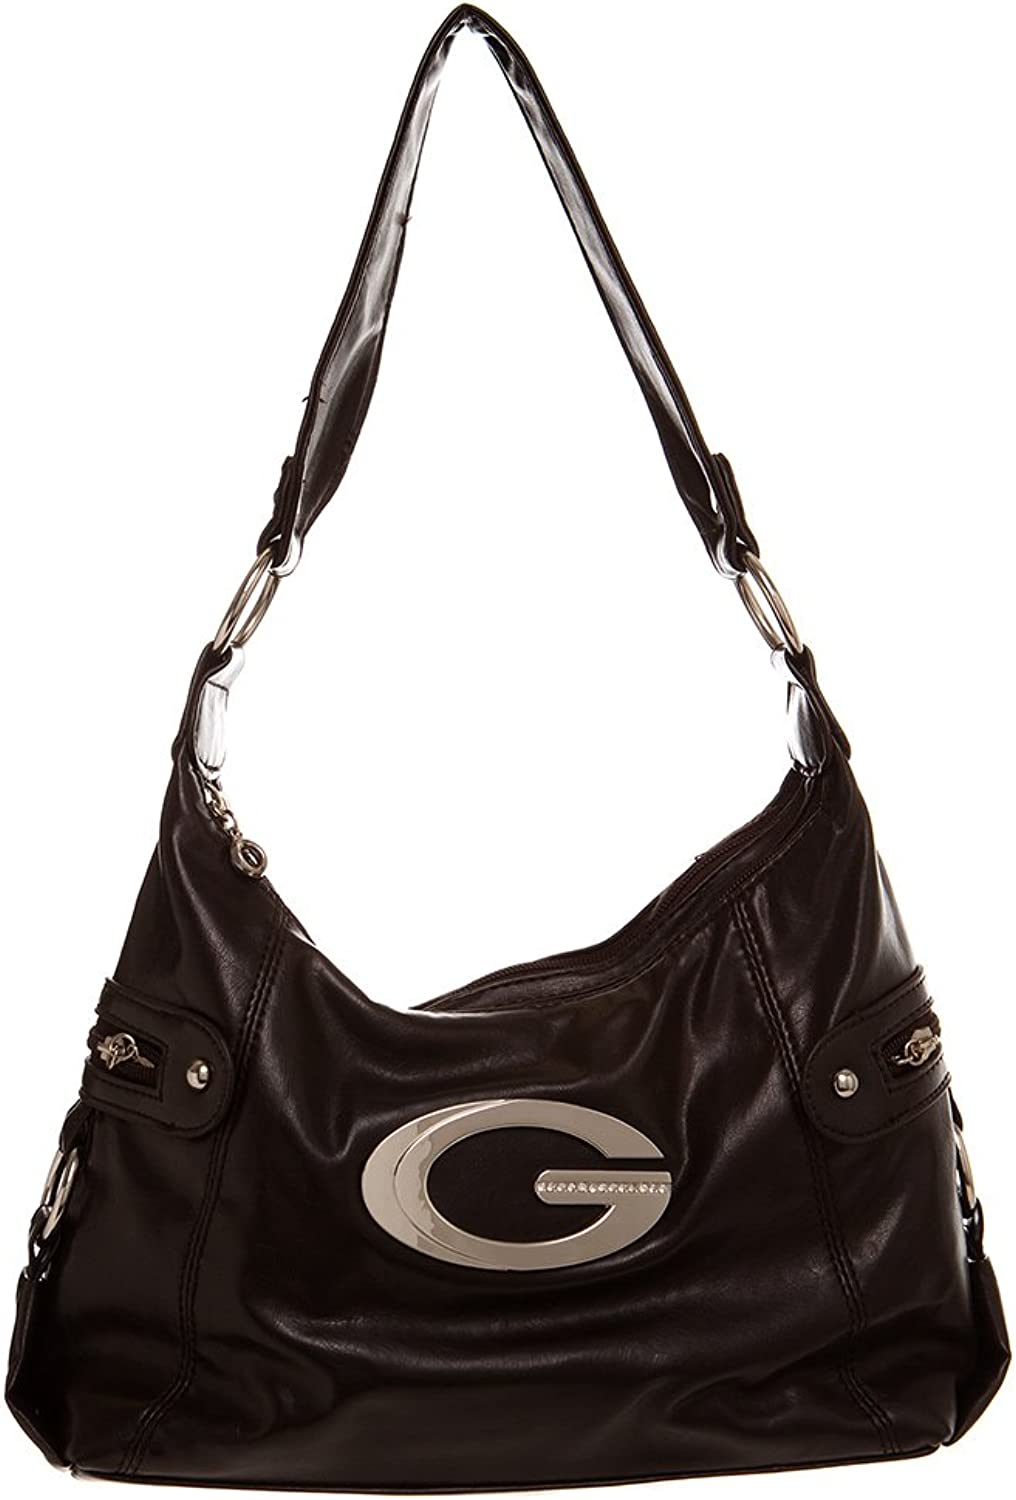 G Inspired Classic Hobo Shoulder Handbag by Handbags For All